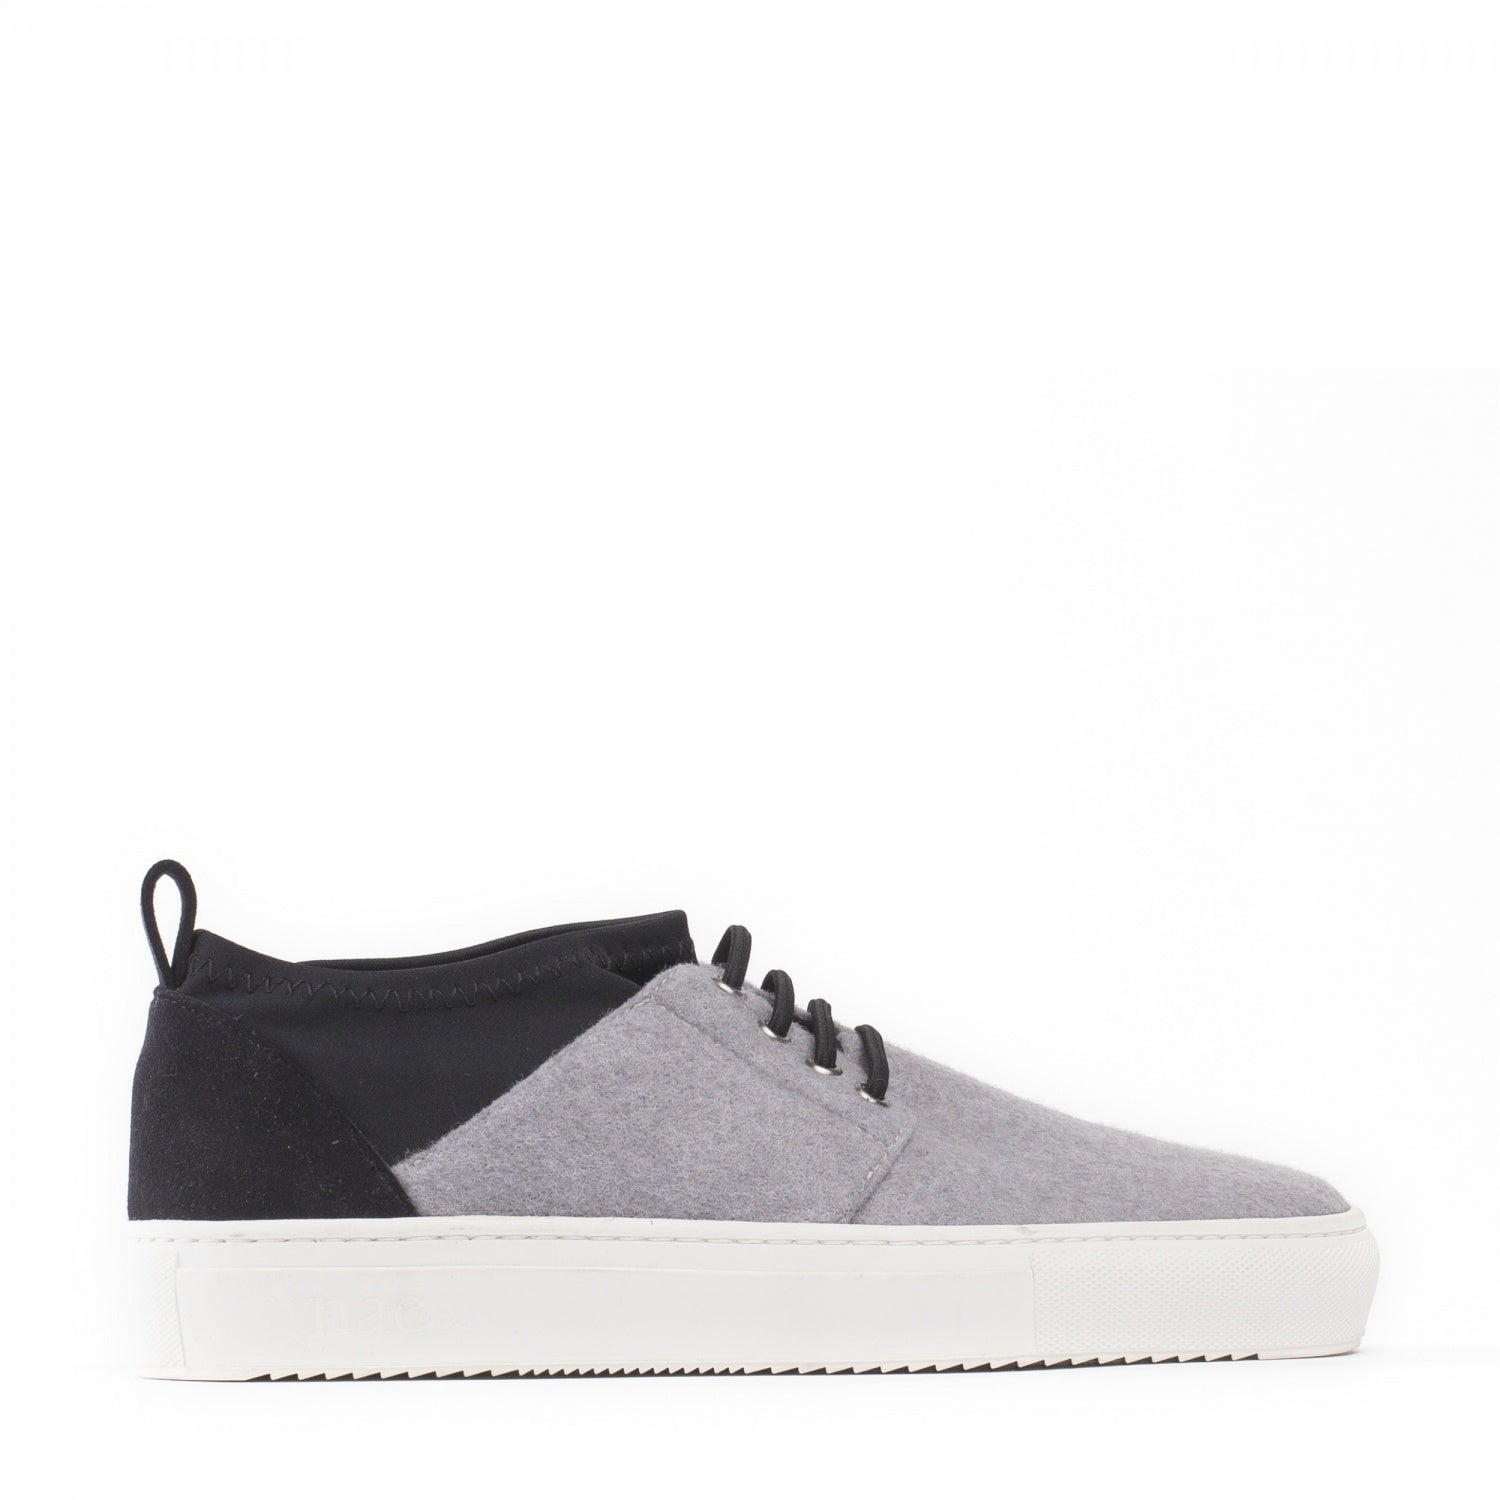 Re-PET Grey - Sneakers Made With PET